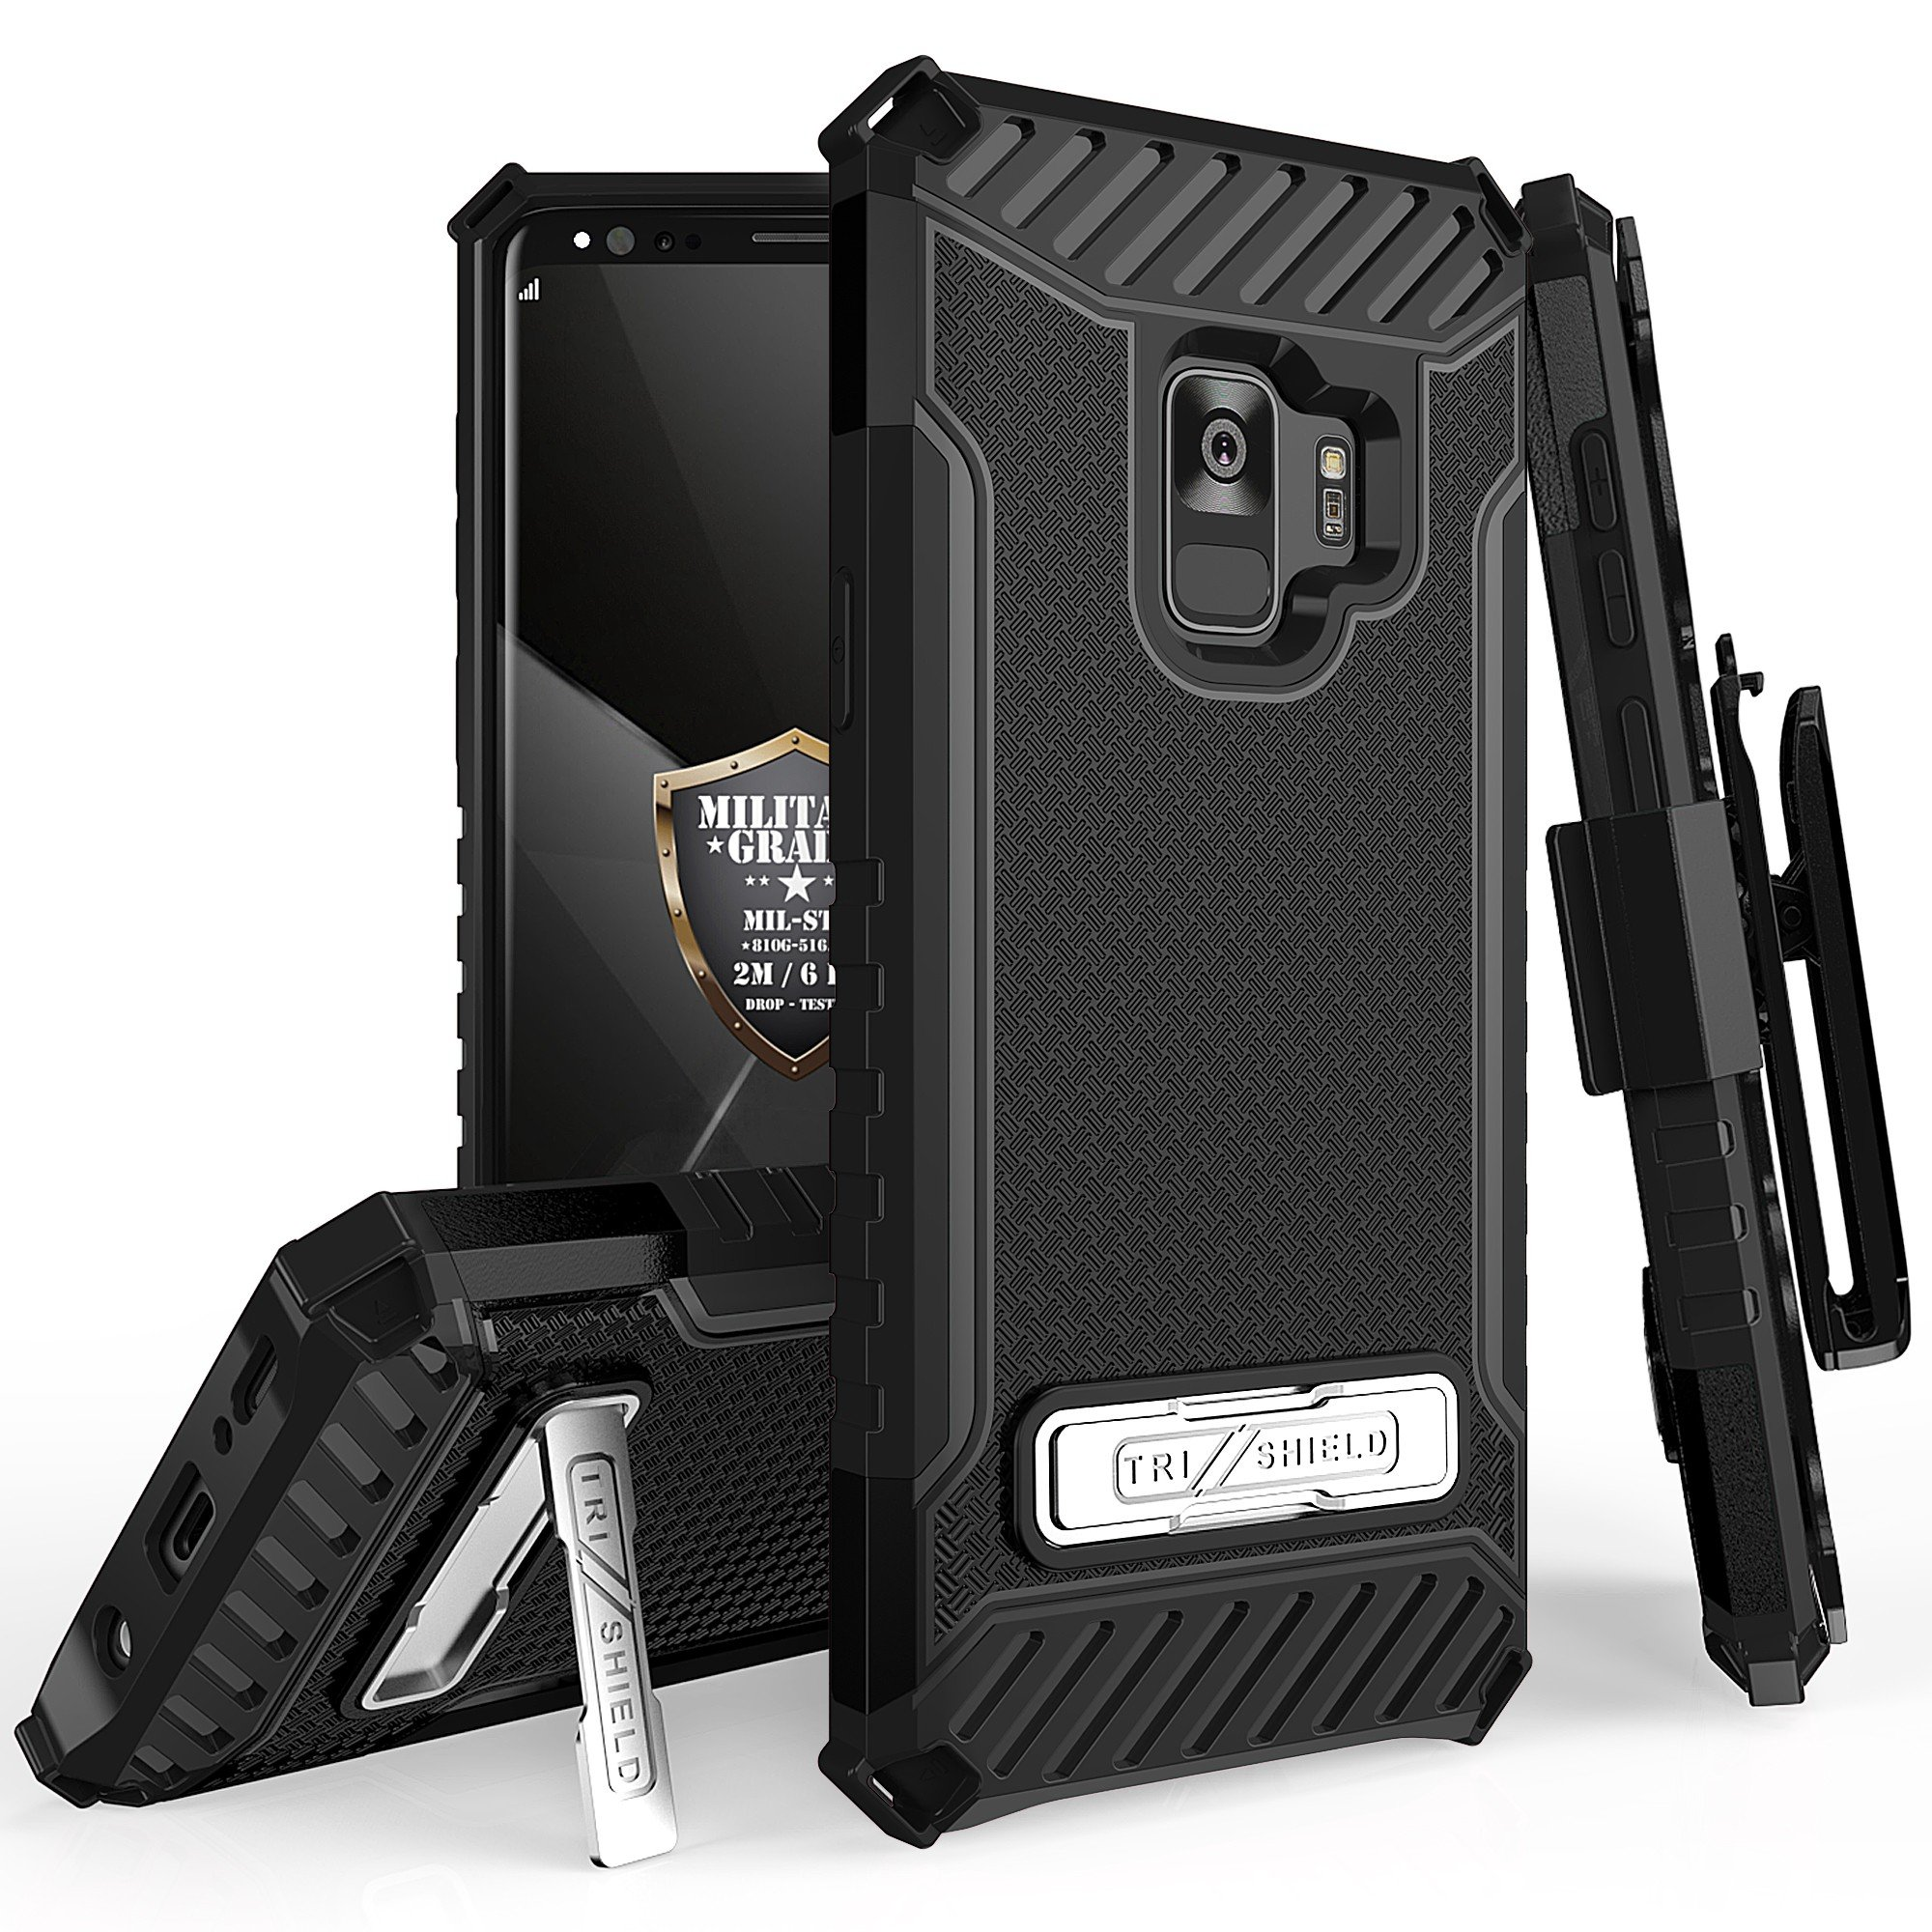 Galaxy S9 Plus / Galaxy S9+ Case Phone Case 360° Cover Protector With Clip Holster Kick stand Armor Layers Grip Sides Shock Bumper for Samsung S9+ (Black)